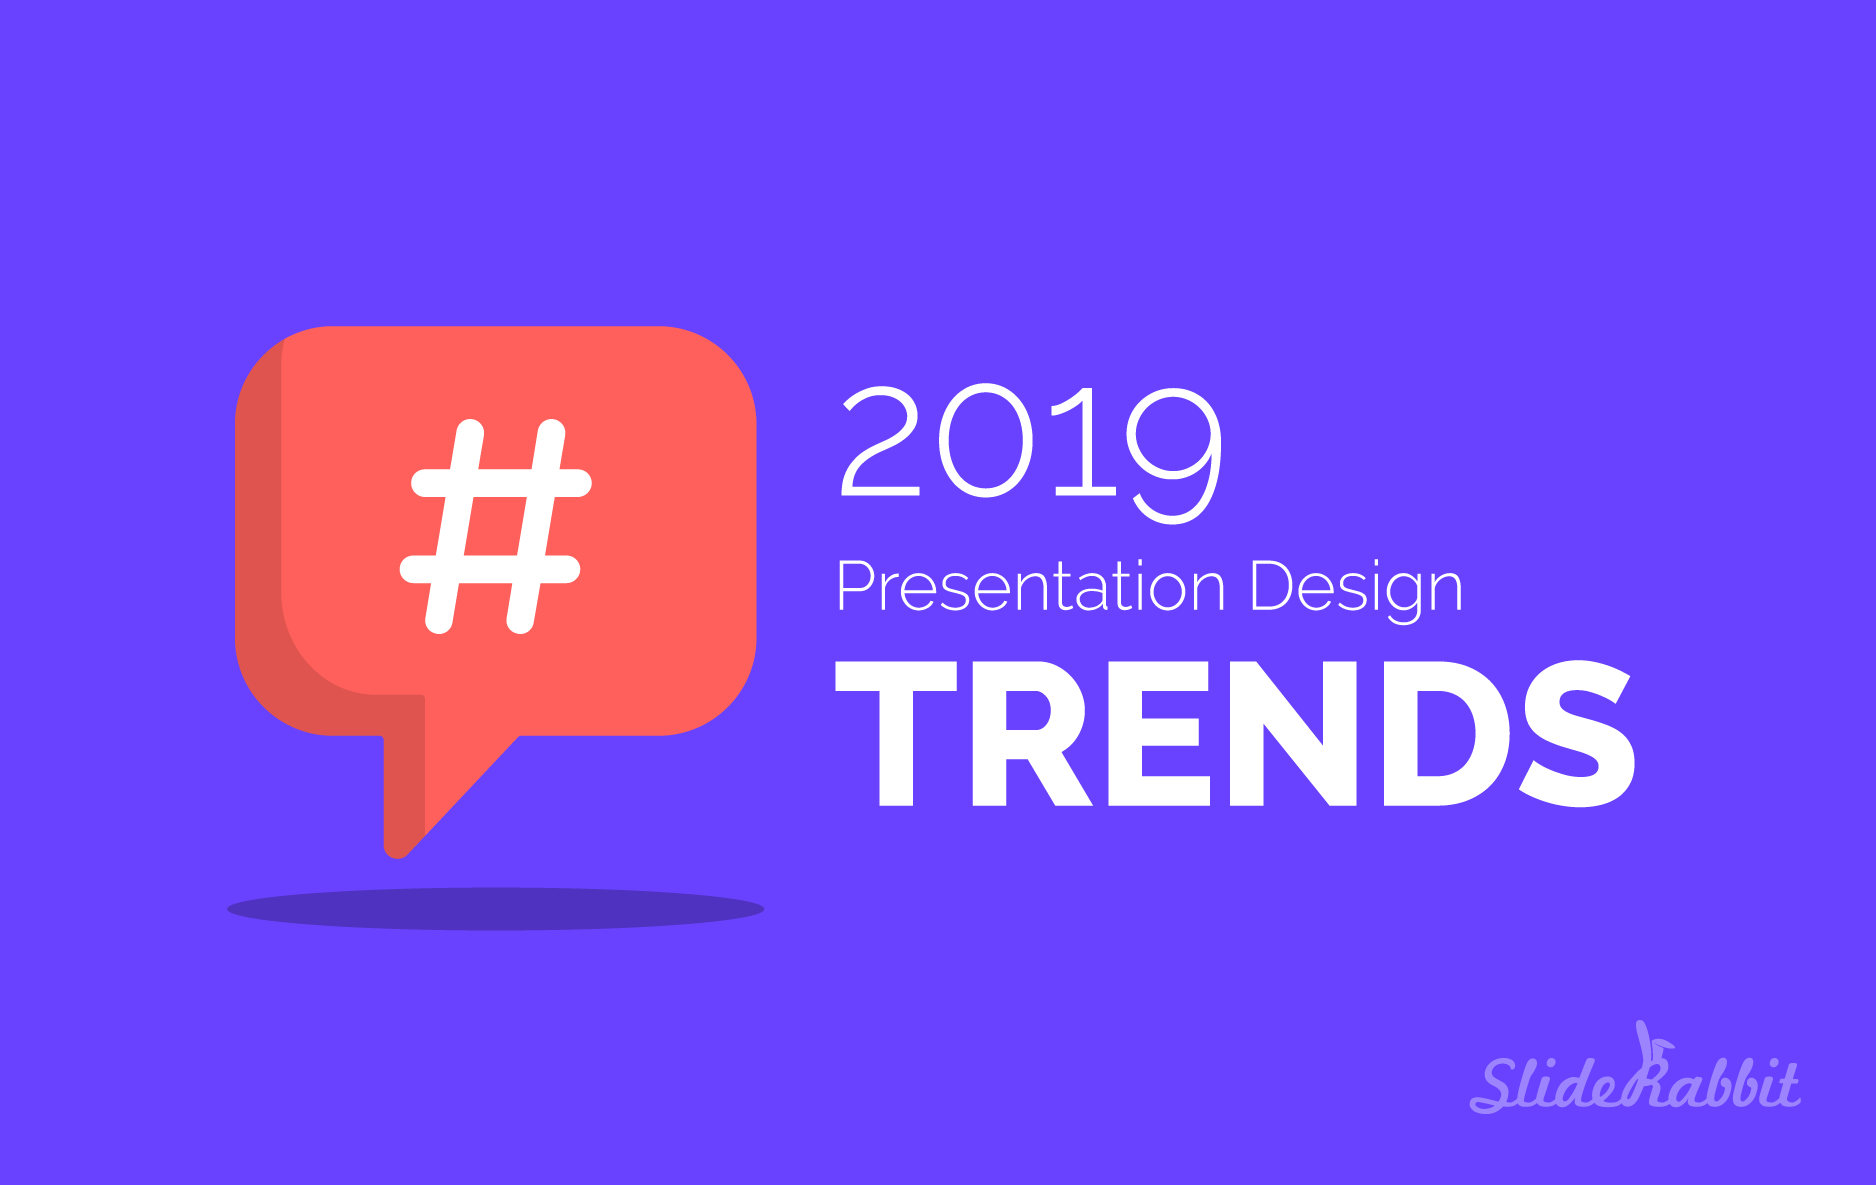 Presentation Design Trends